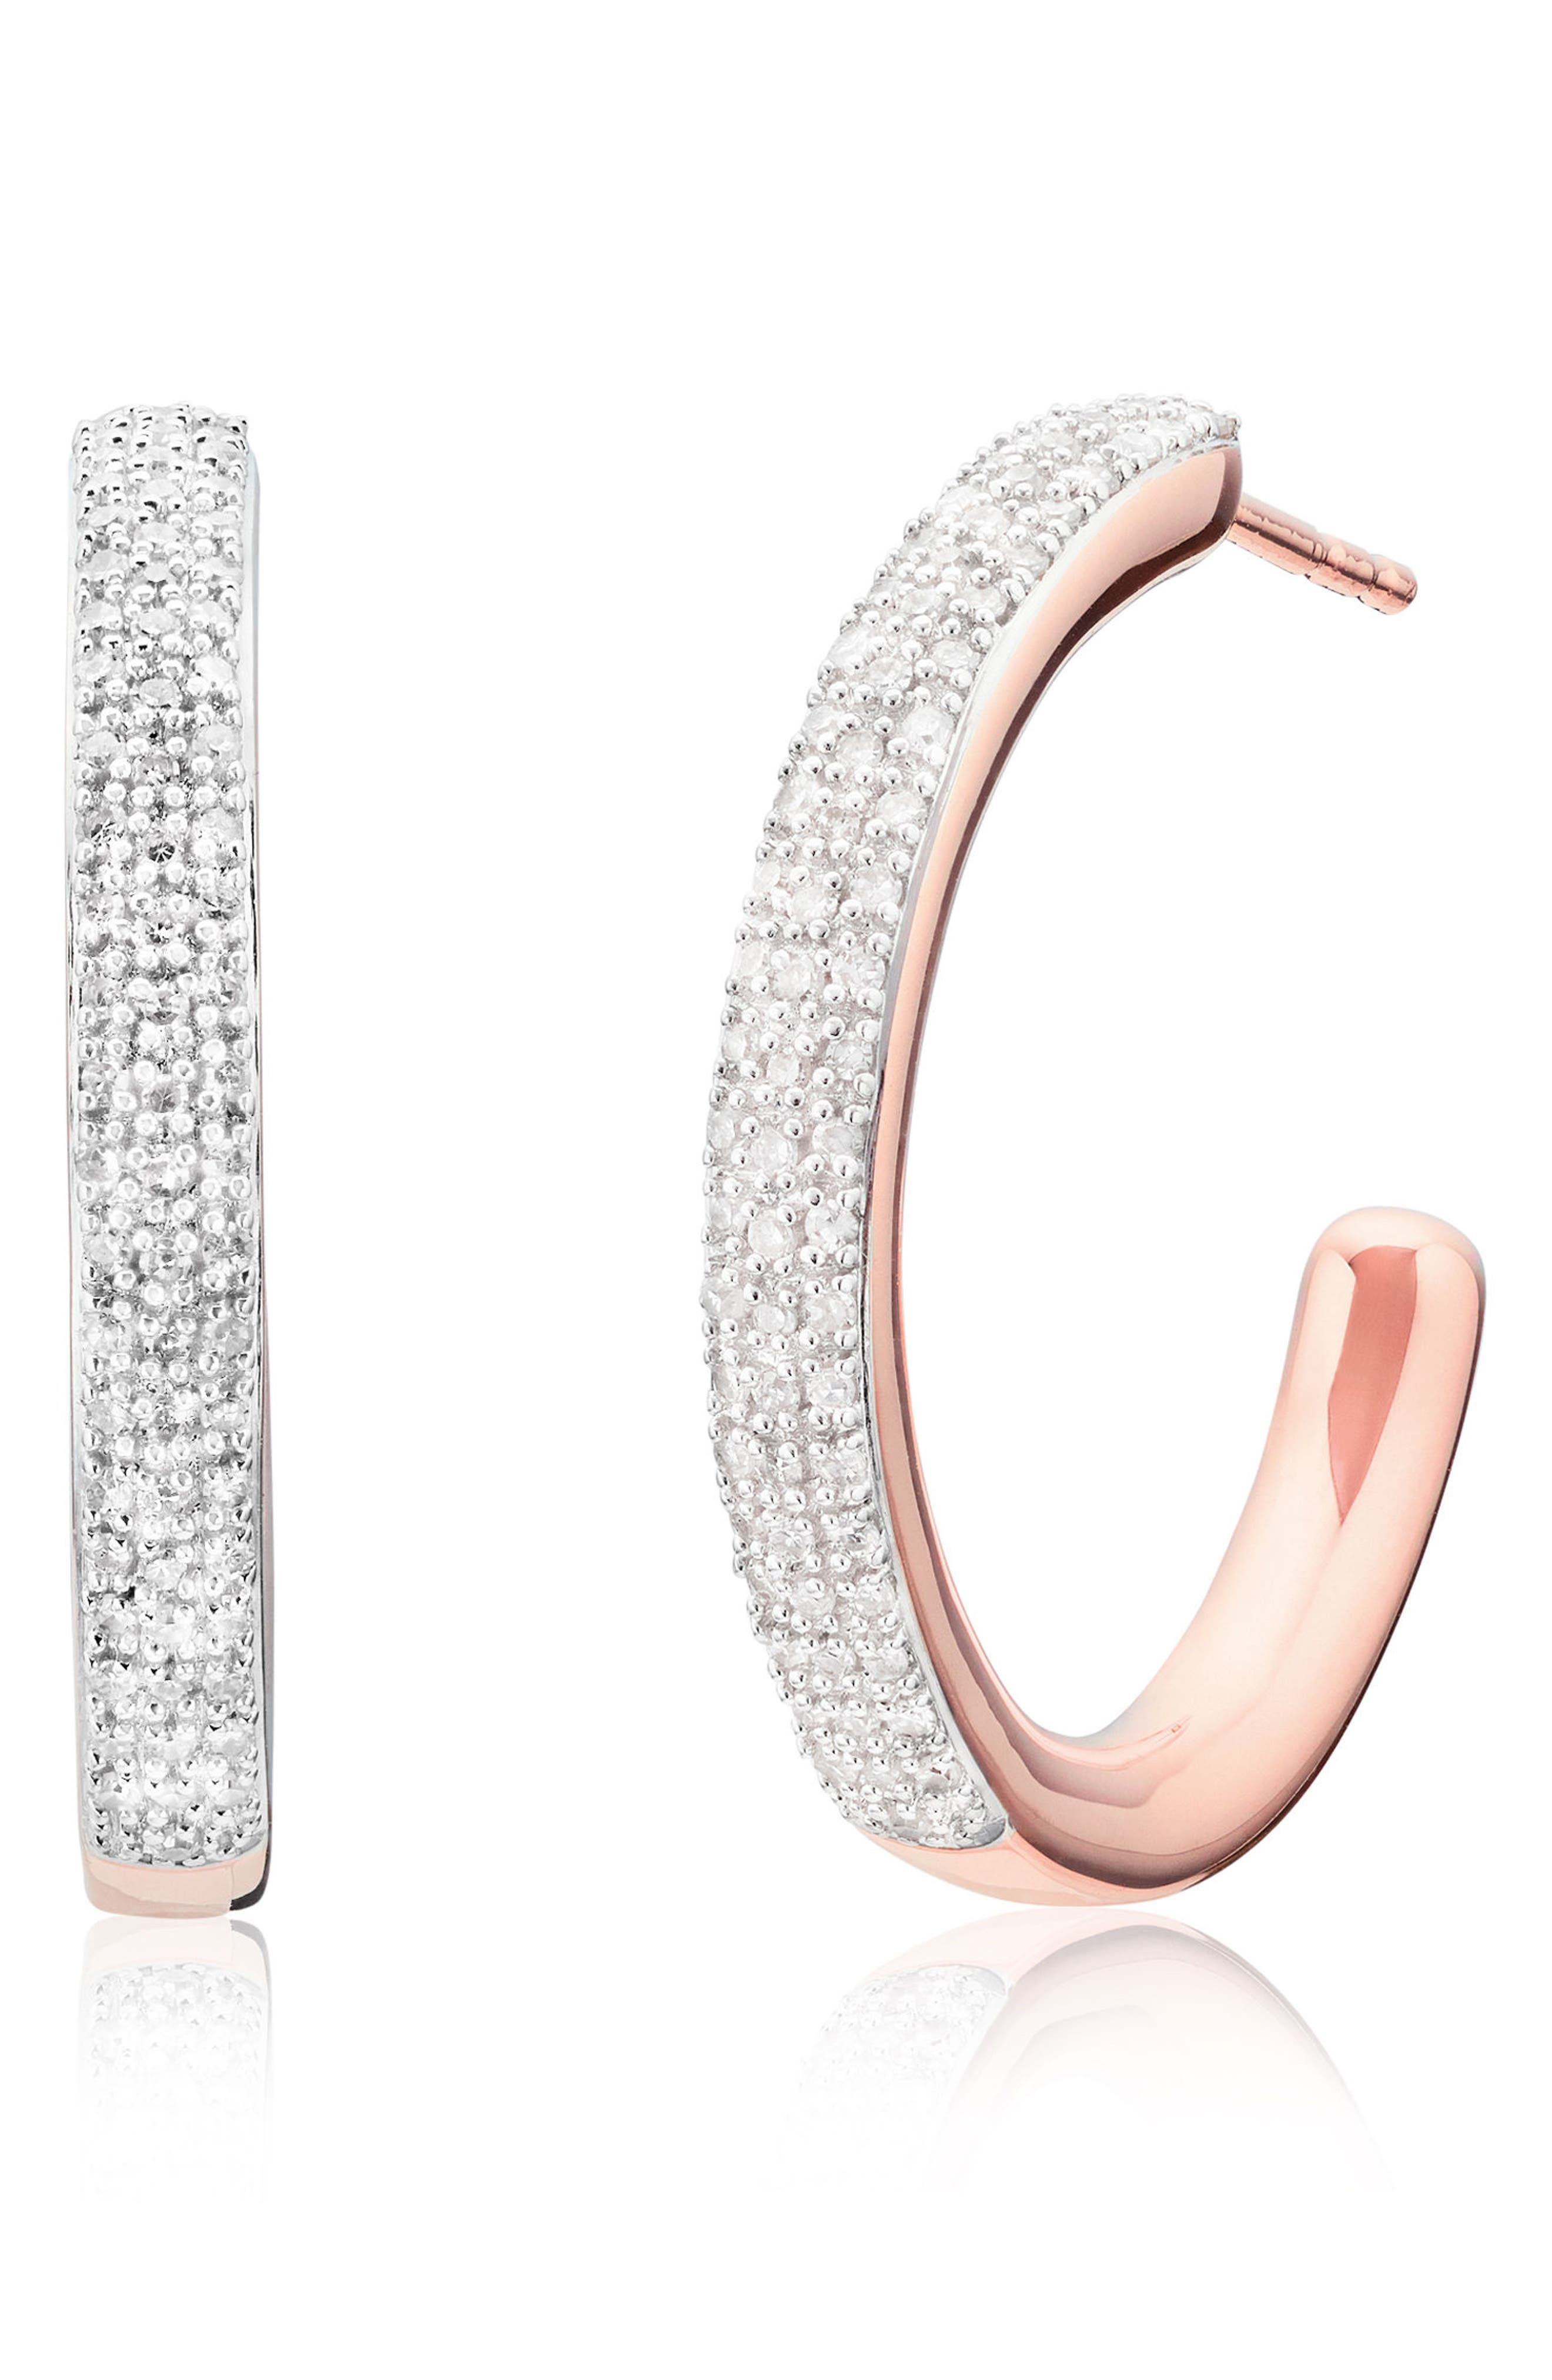 Fiji Large Diamond Hoop Earrings,                             Main thumbnail 1, color,                             Rose Gold